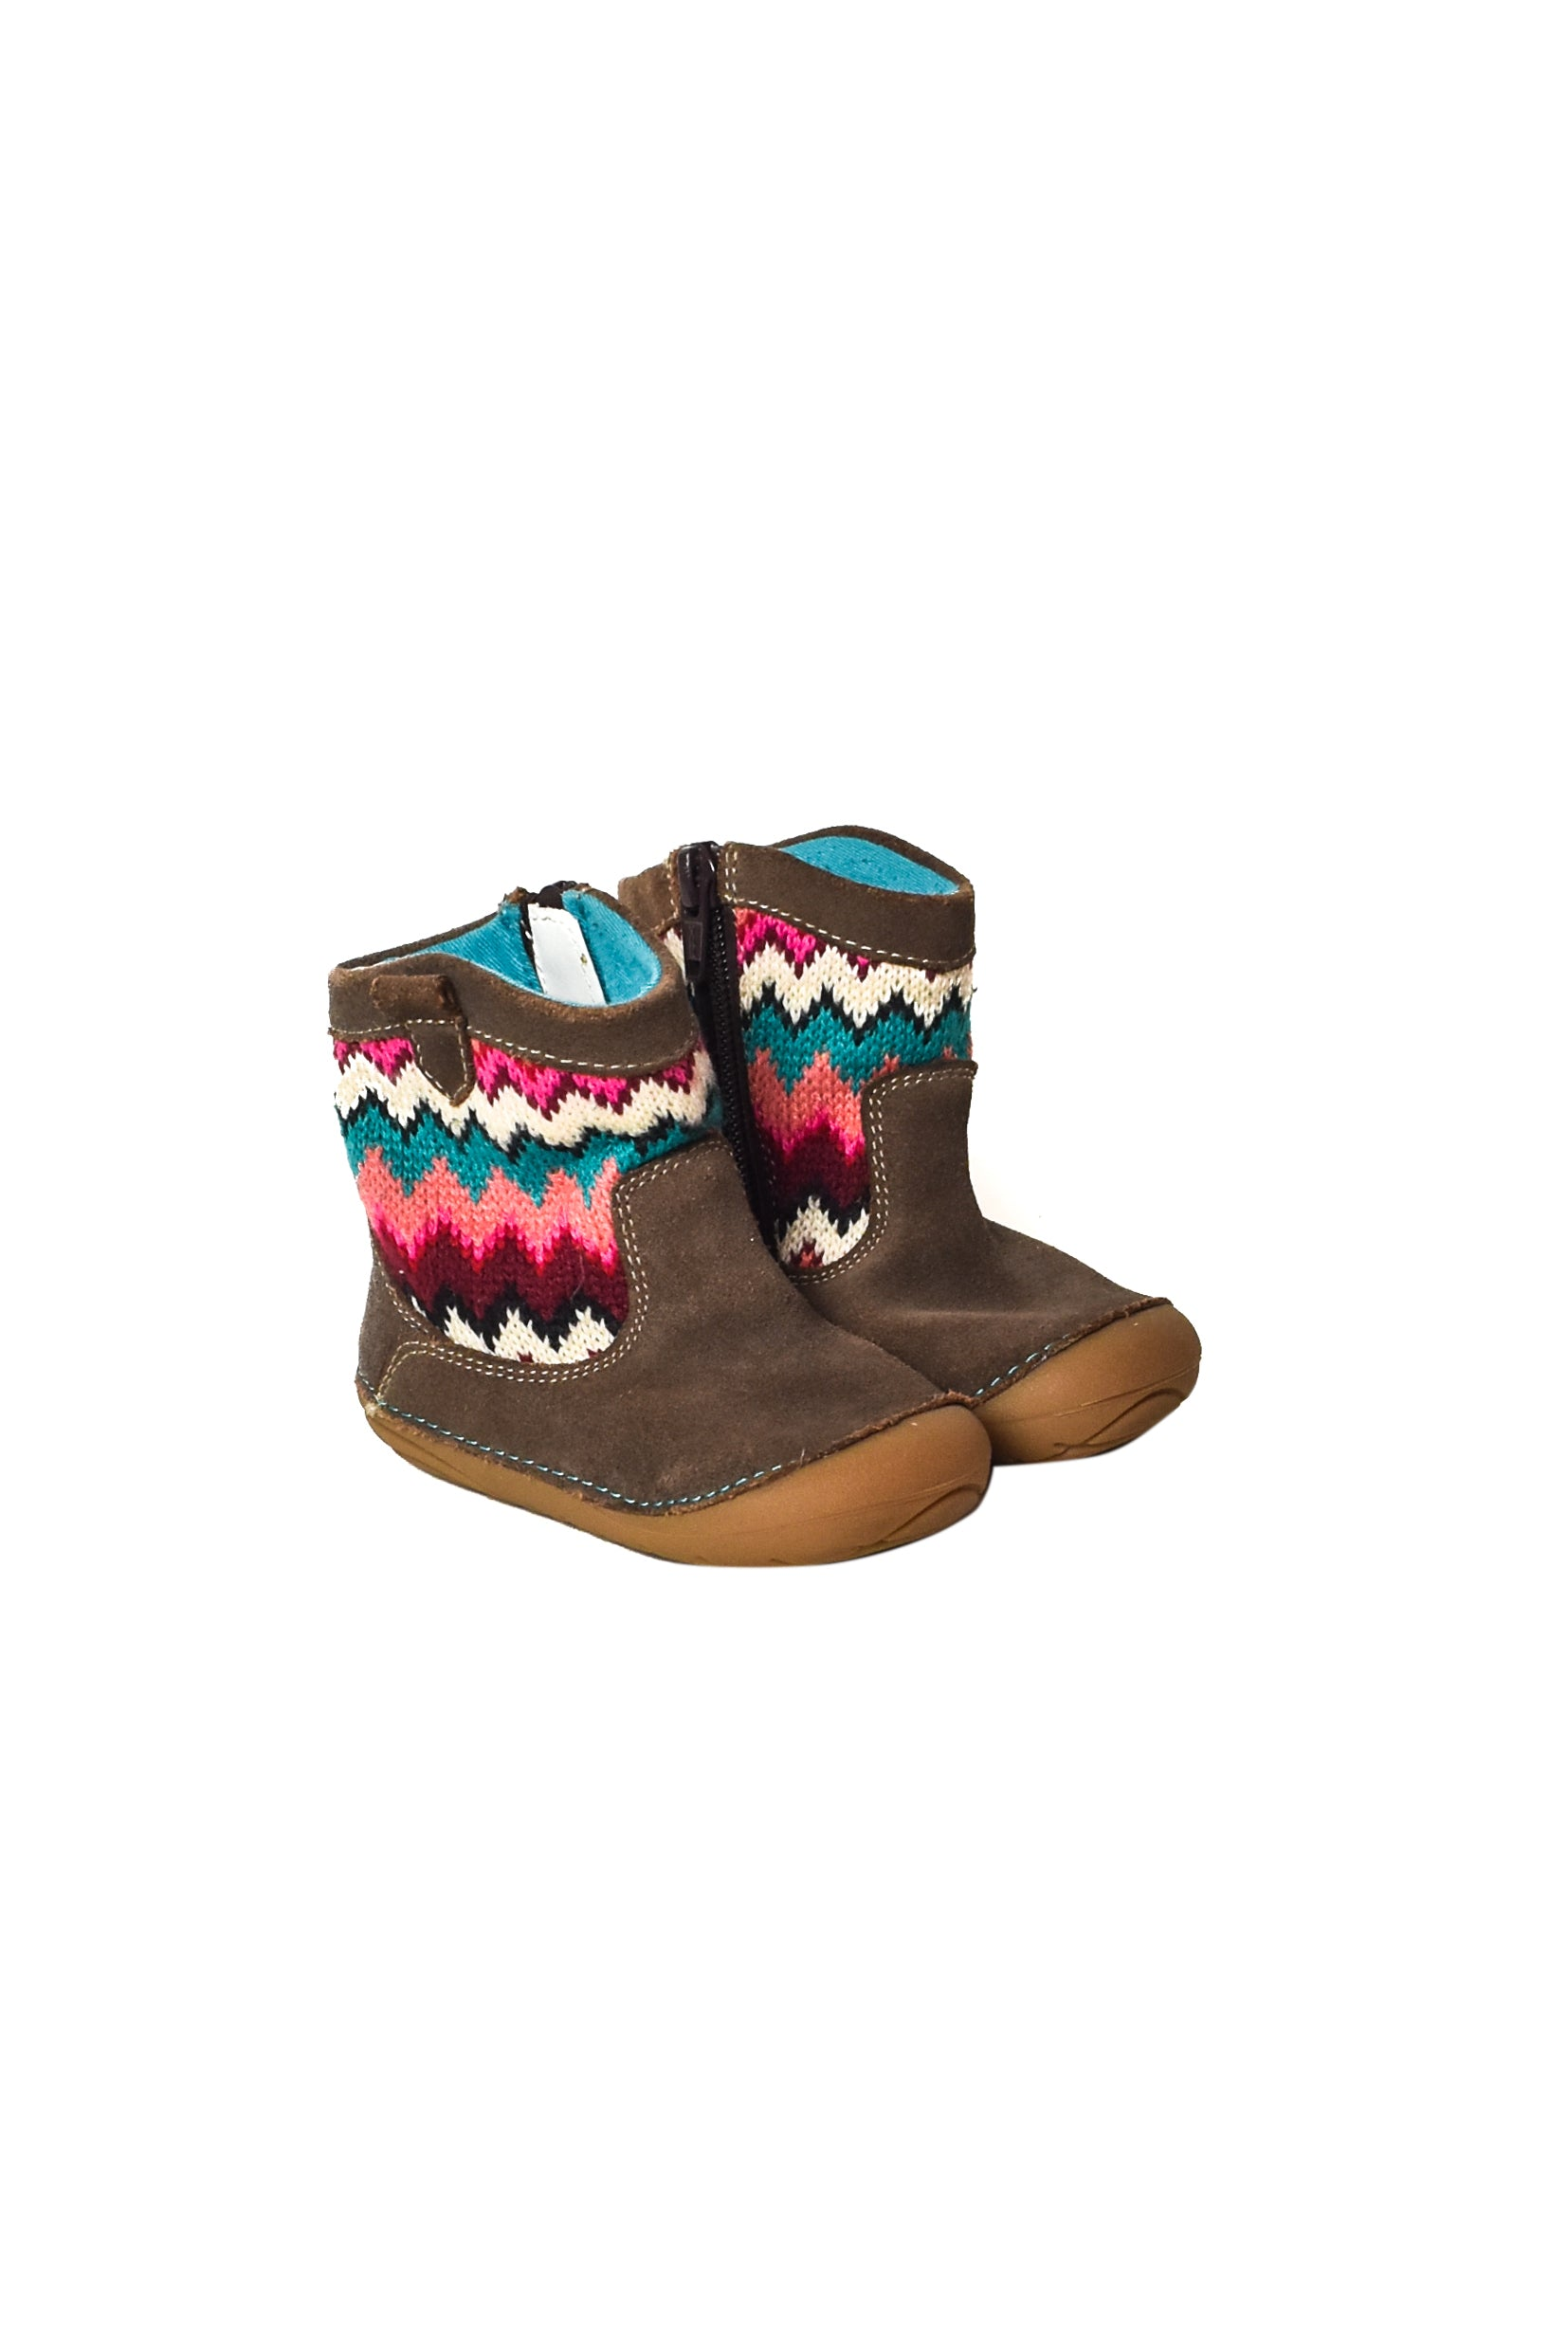 10012733 Stride Rite Baby ~ Boots 18-24M (EU 21.5) at Retykle